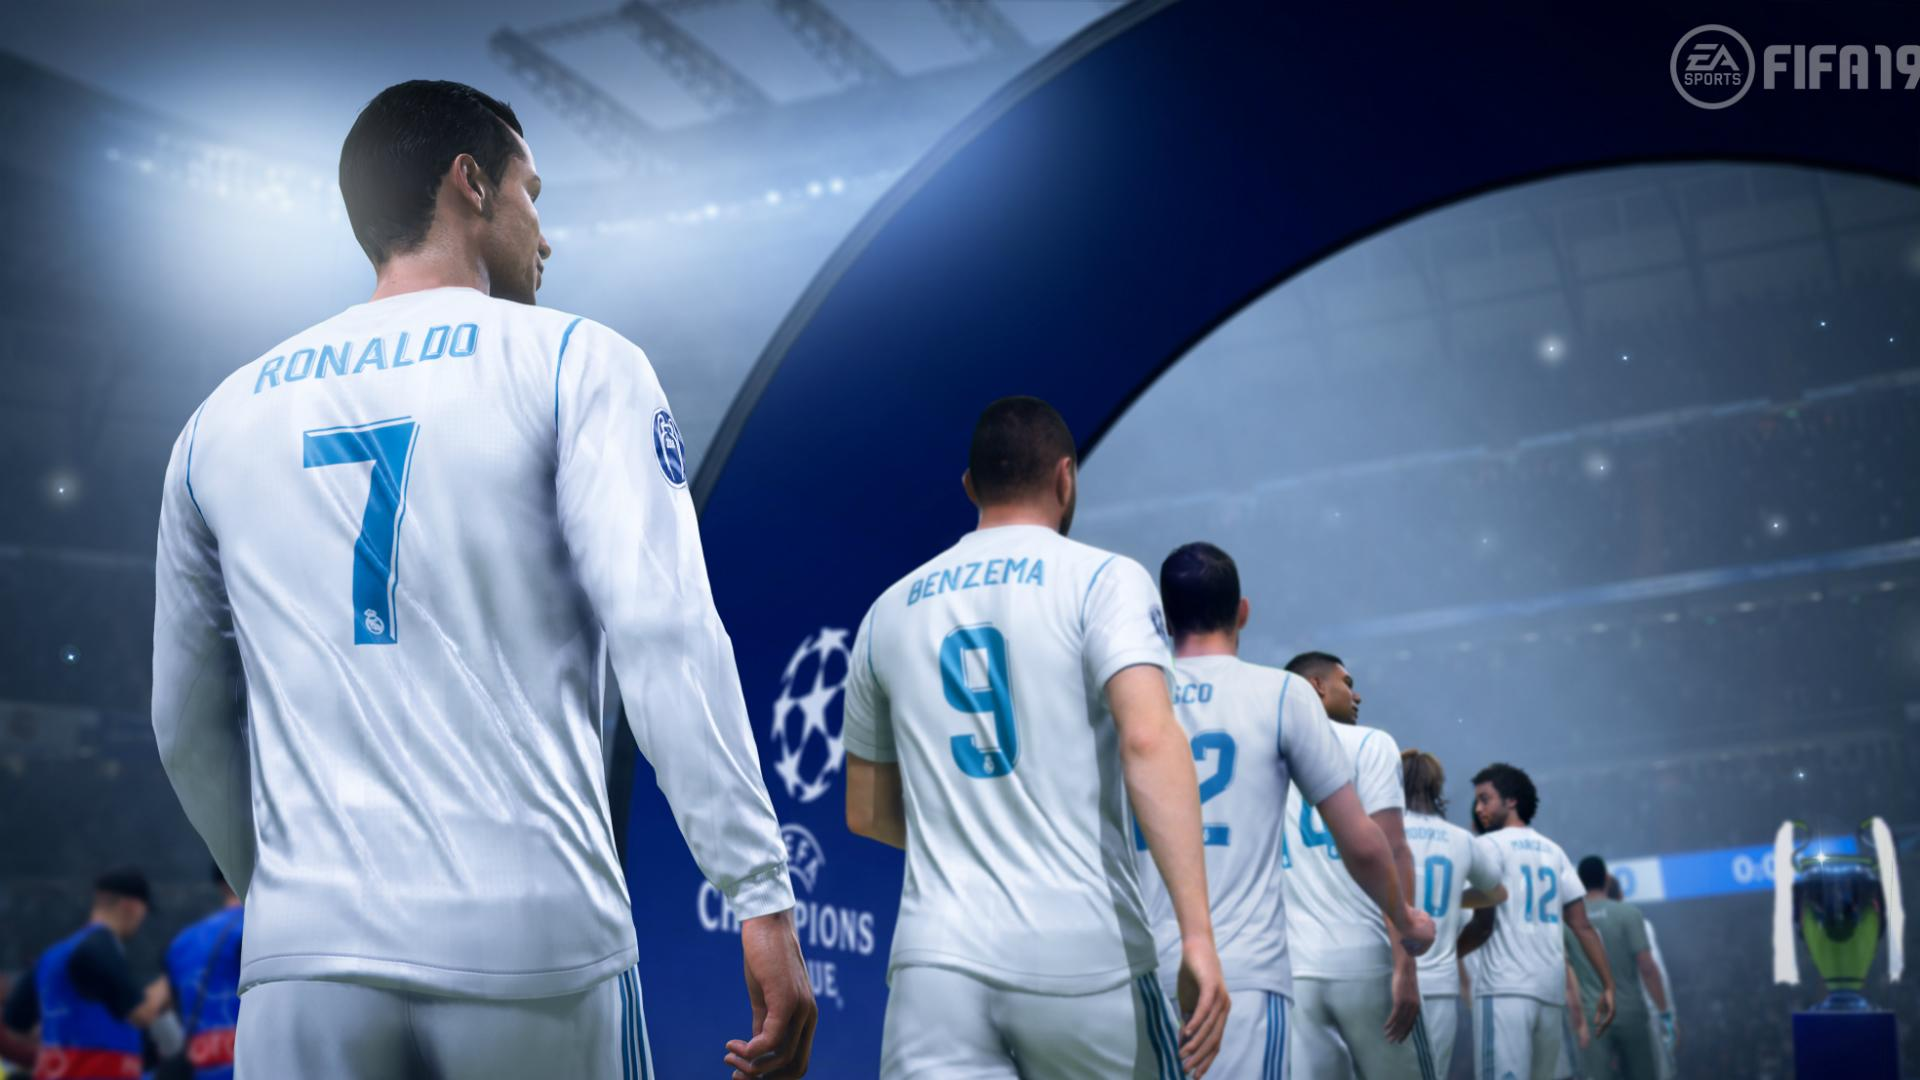 FIFA 19 could feature cross play at some stage